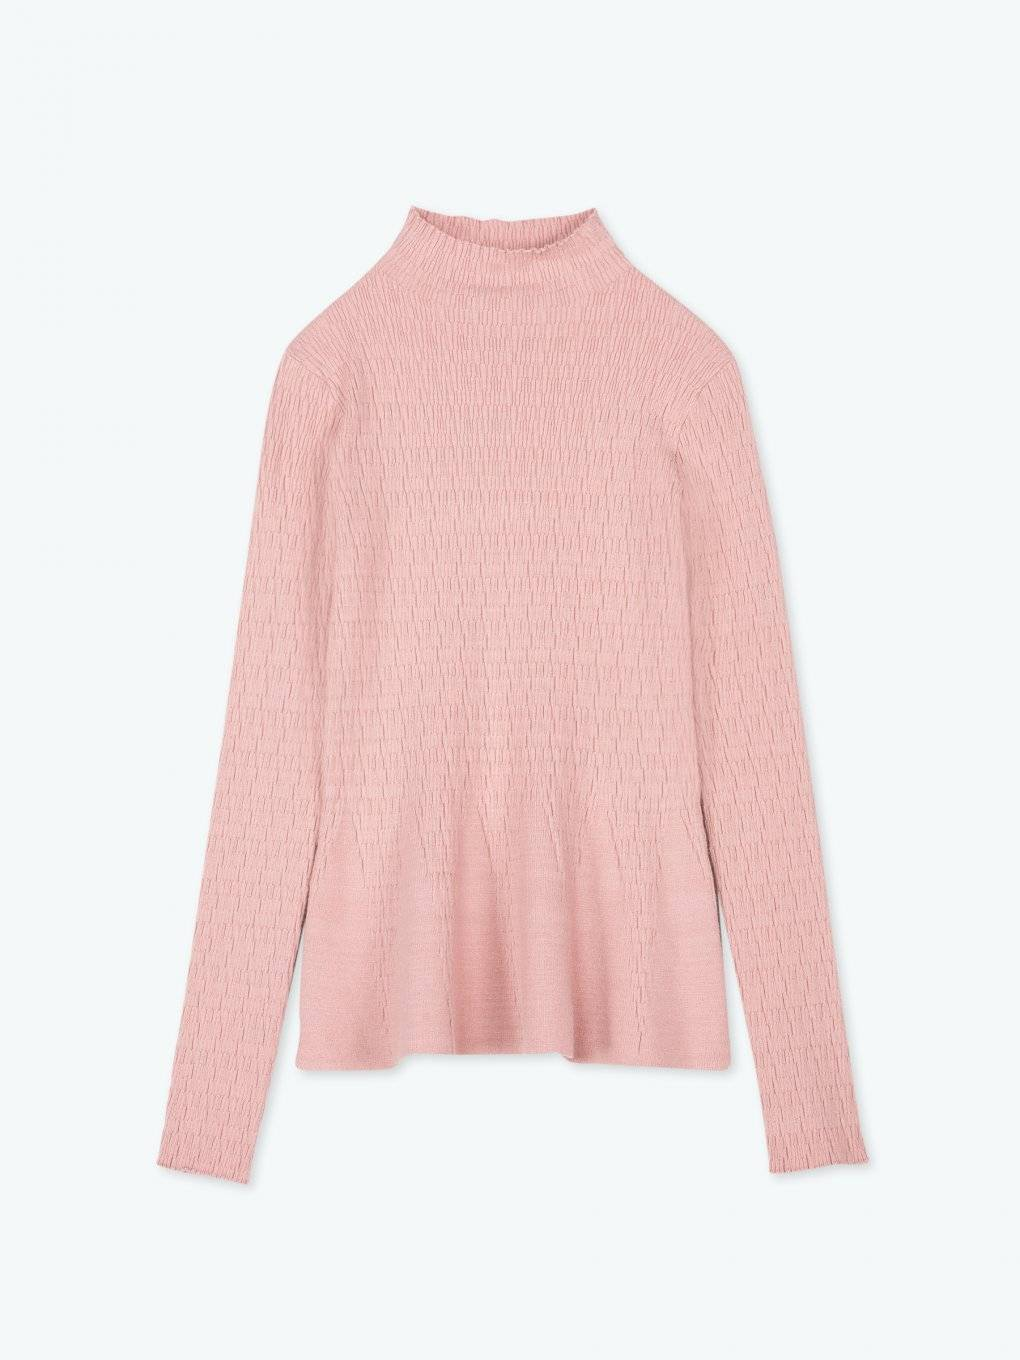 Structured high collar pullover with ruffled hem